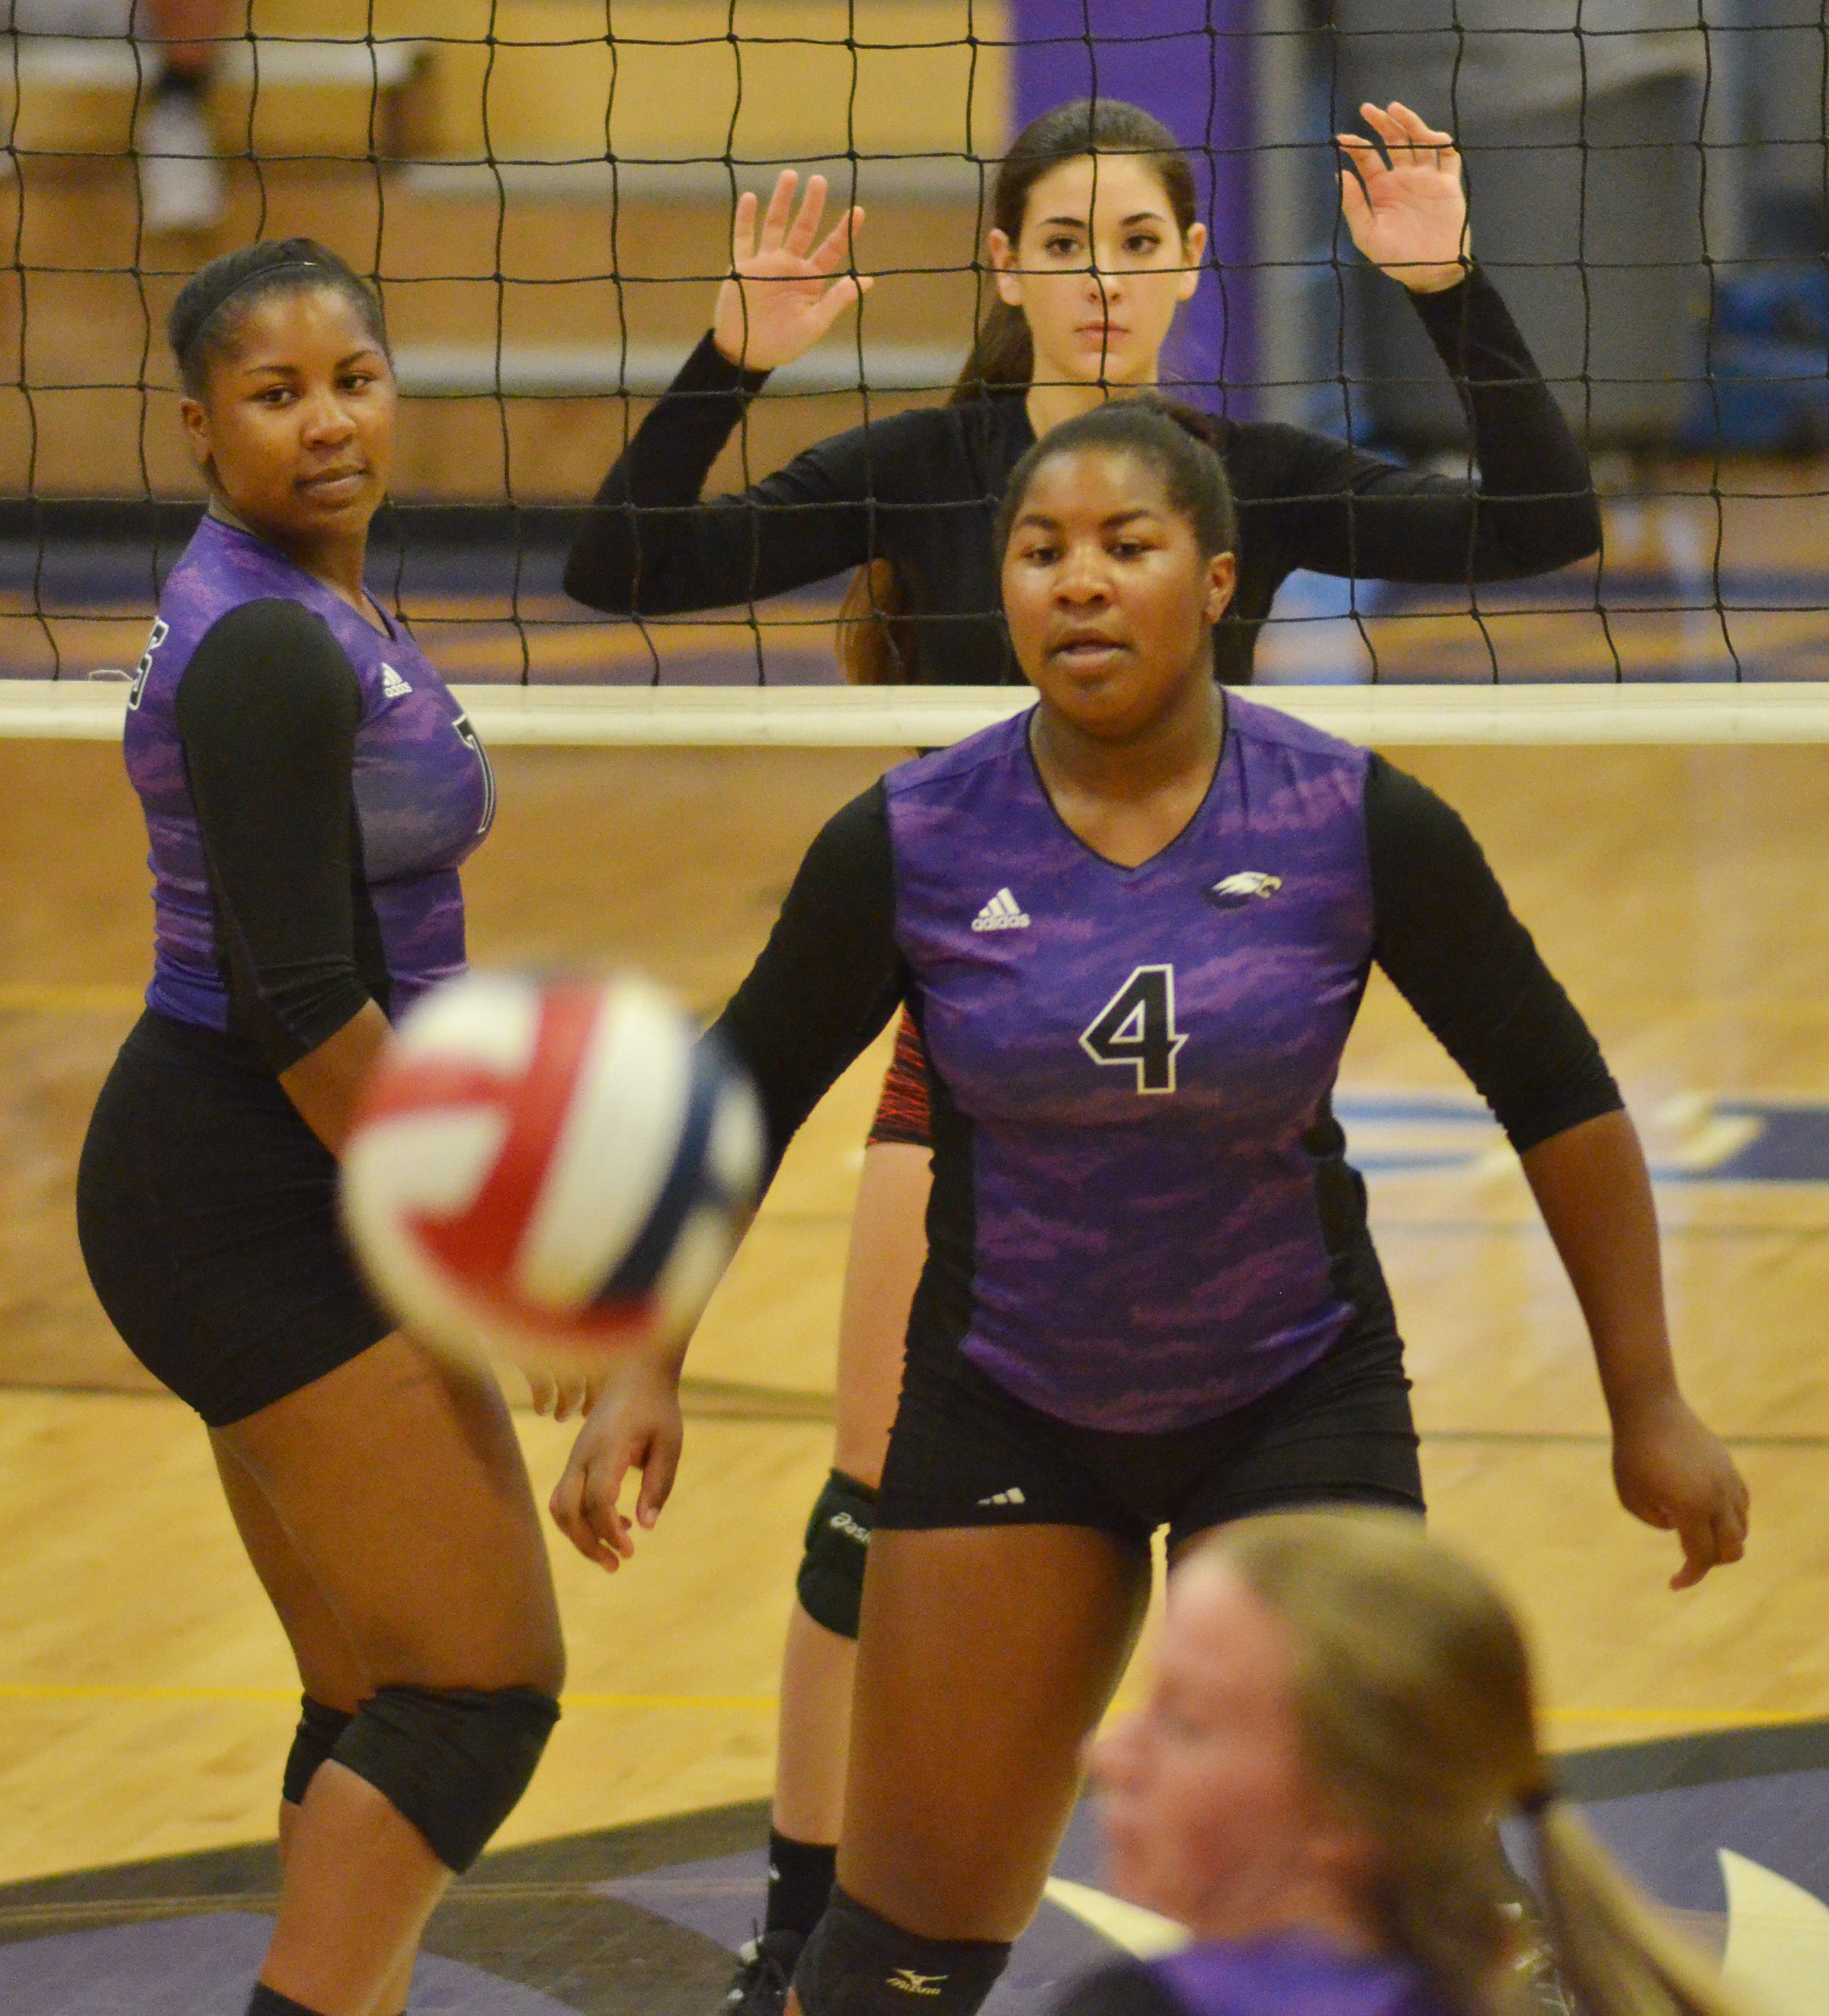 CHS seniors Kiyah Barnett, at left, and Nena Barnett watch the ball.